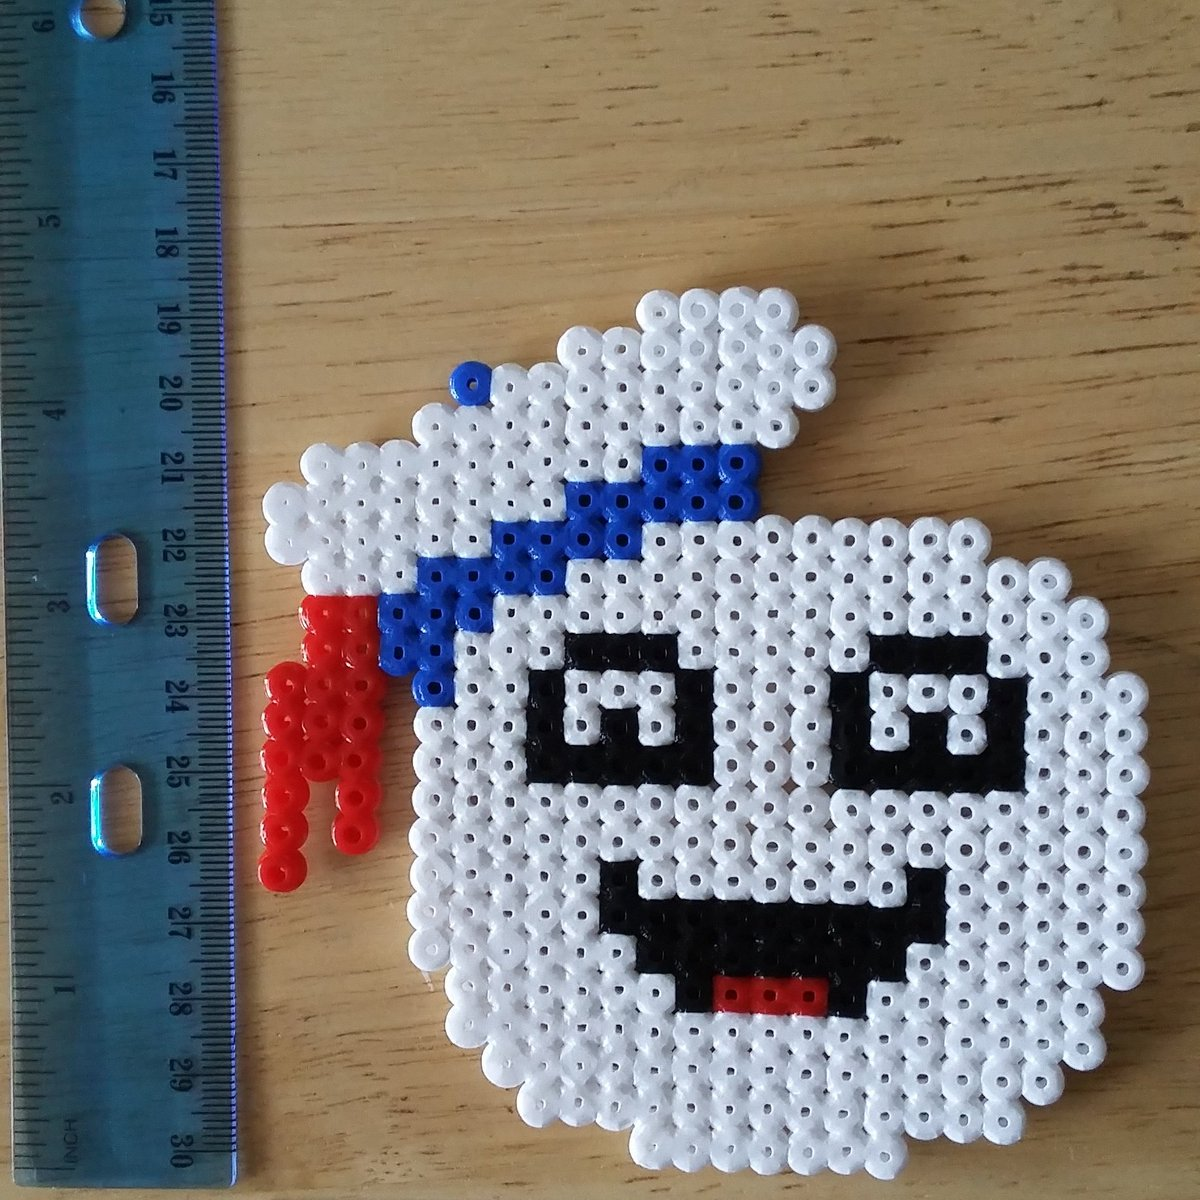 Quebec Ghostbusters On Twitter Stay Puft Head Pixel Art